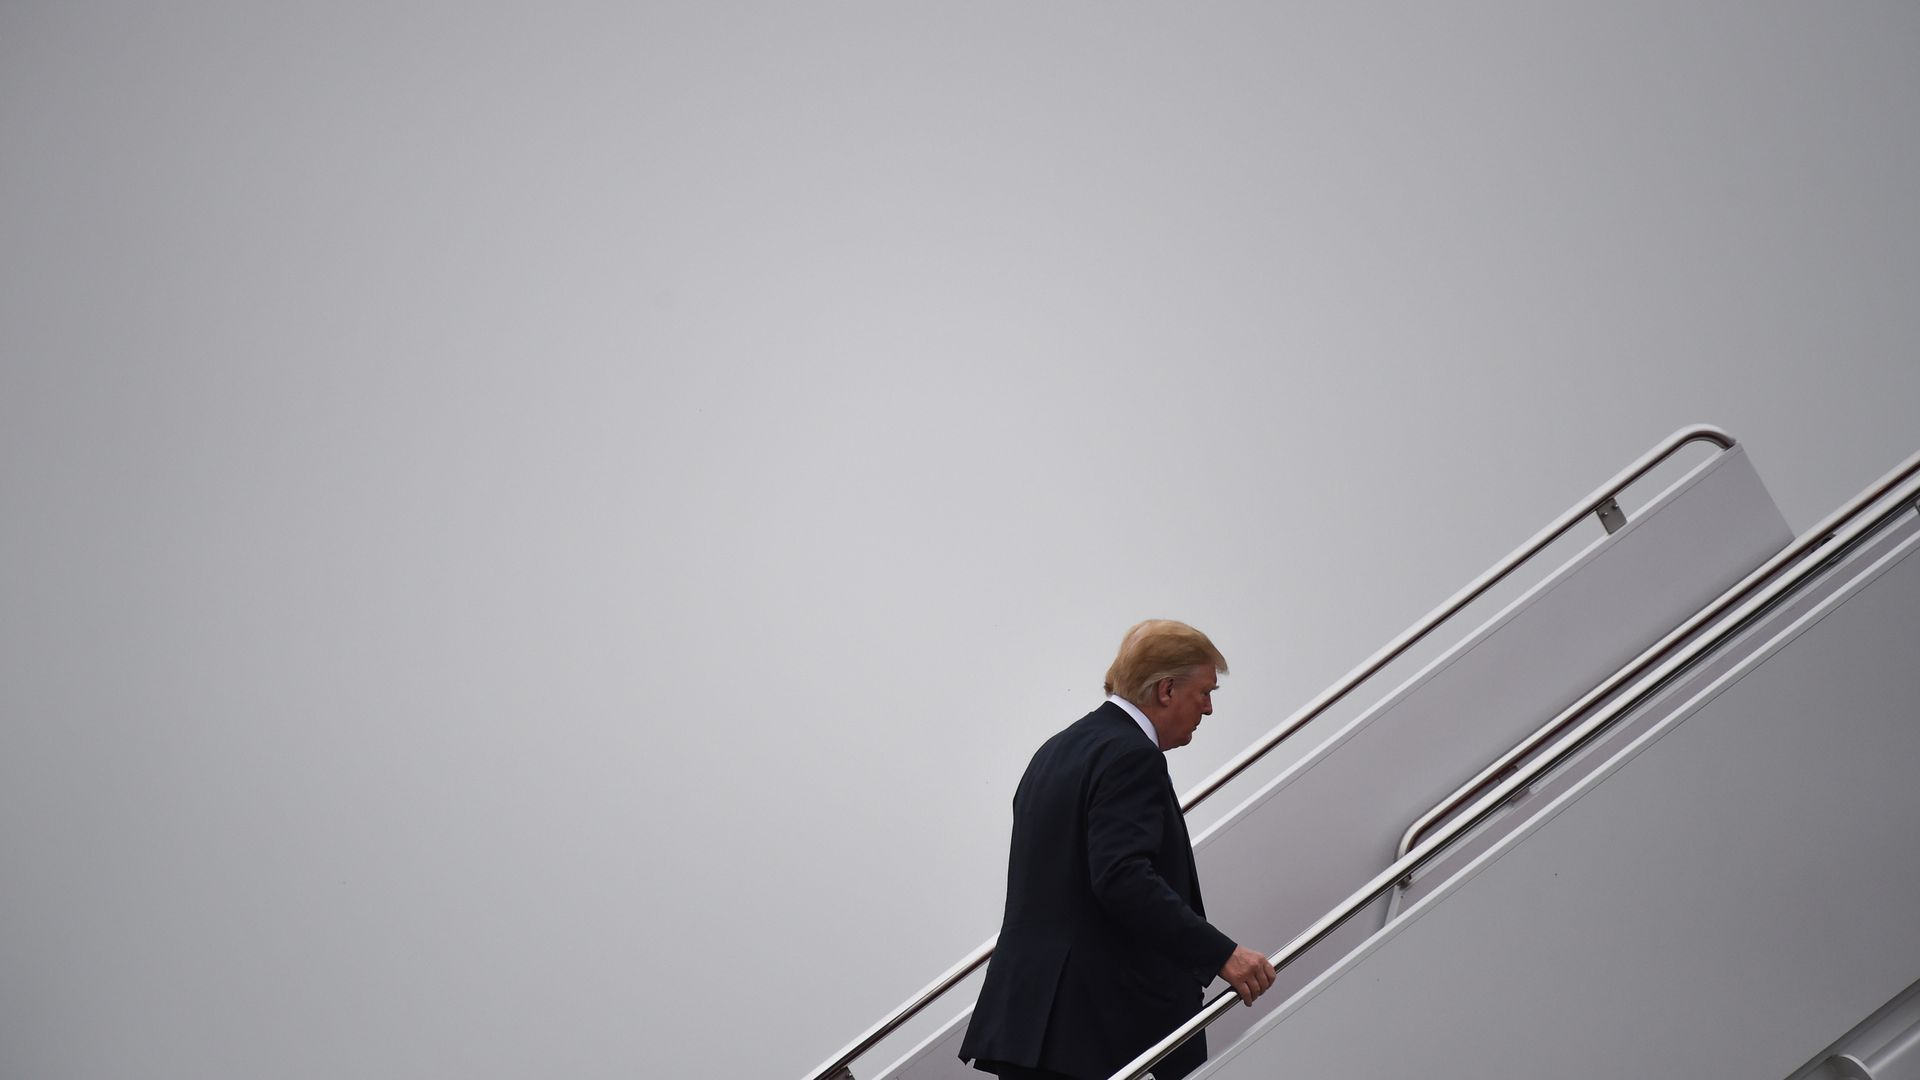 President Trump walks to Air Force one before departing from Joint Andrews Airforce base, Maryland on June 23, 2018.